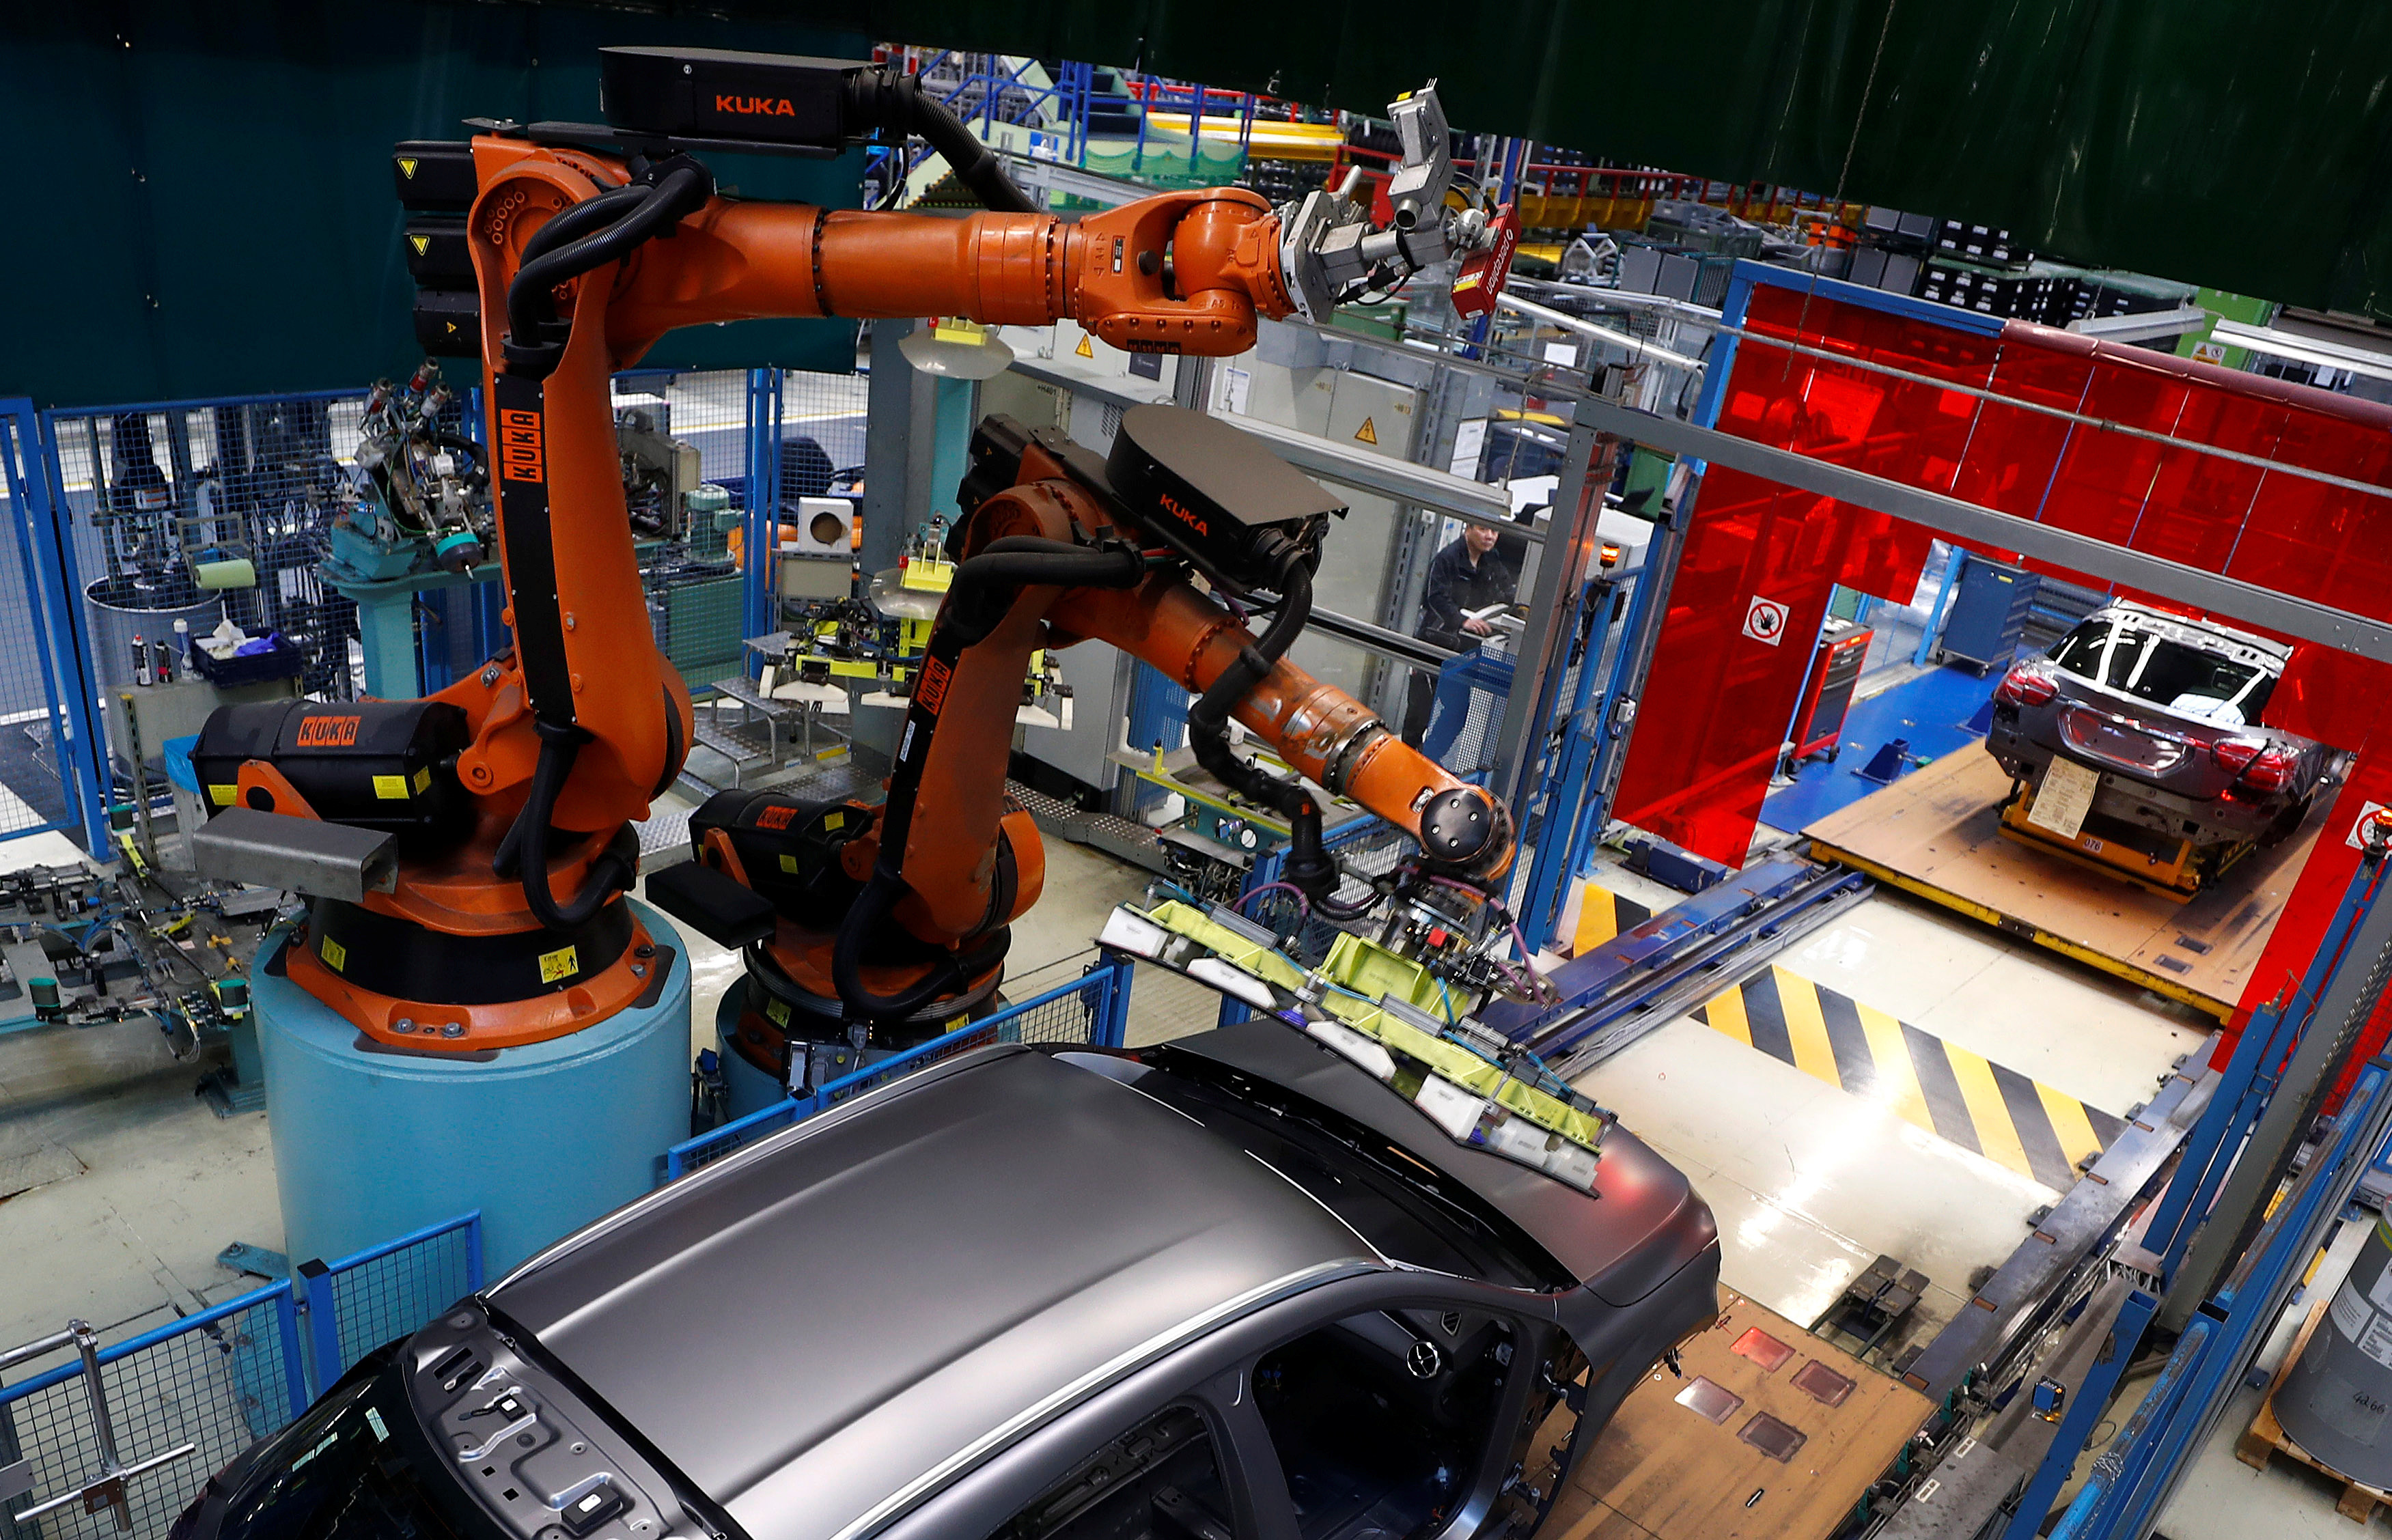 A robot engineered by Kuka adjusts a windscreen in a fully automated process on a model of the A-class production line of German car manufacturer Mercedes Benz at the Daimler factory in Rastatt, Germany, February 4, 2019. Picture taken on February 4, 2019.  REUTERS/Kai Pfaffenbach - RC18ED249E90